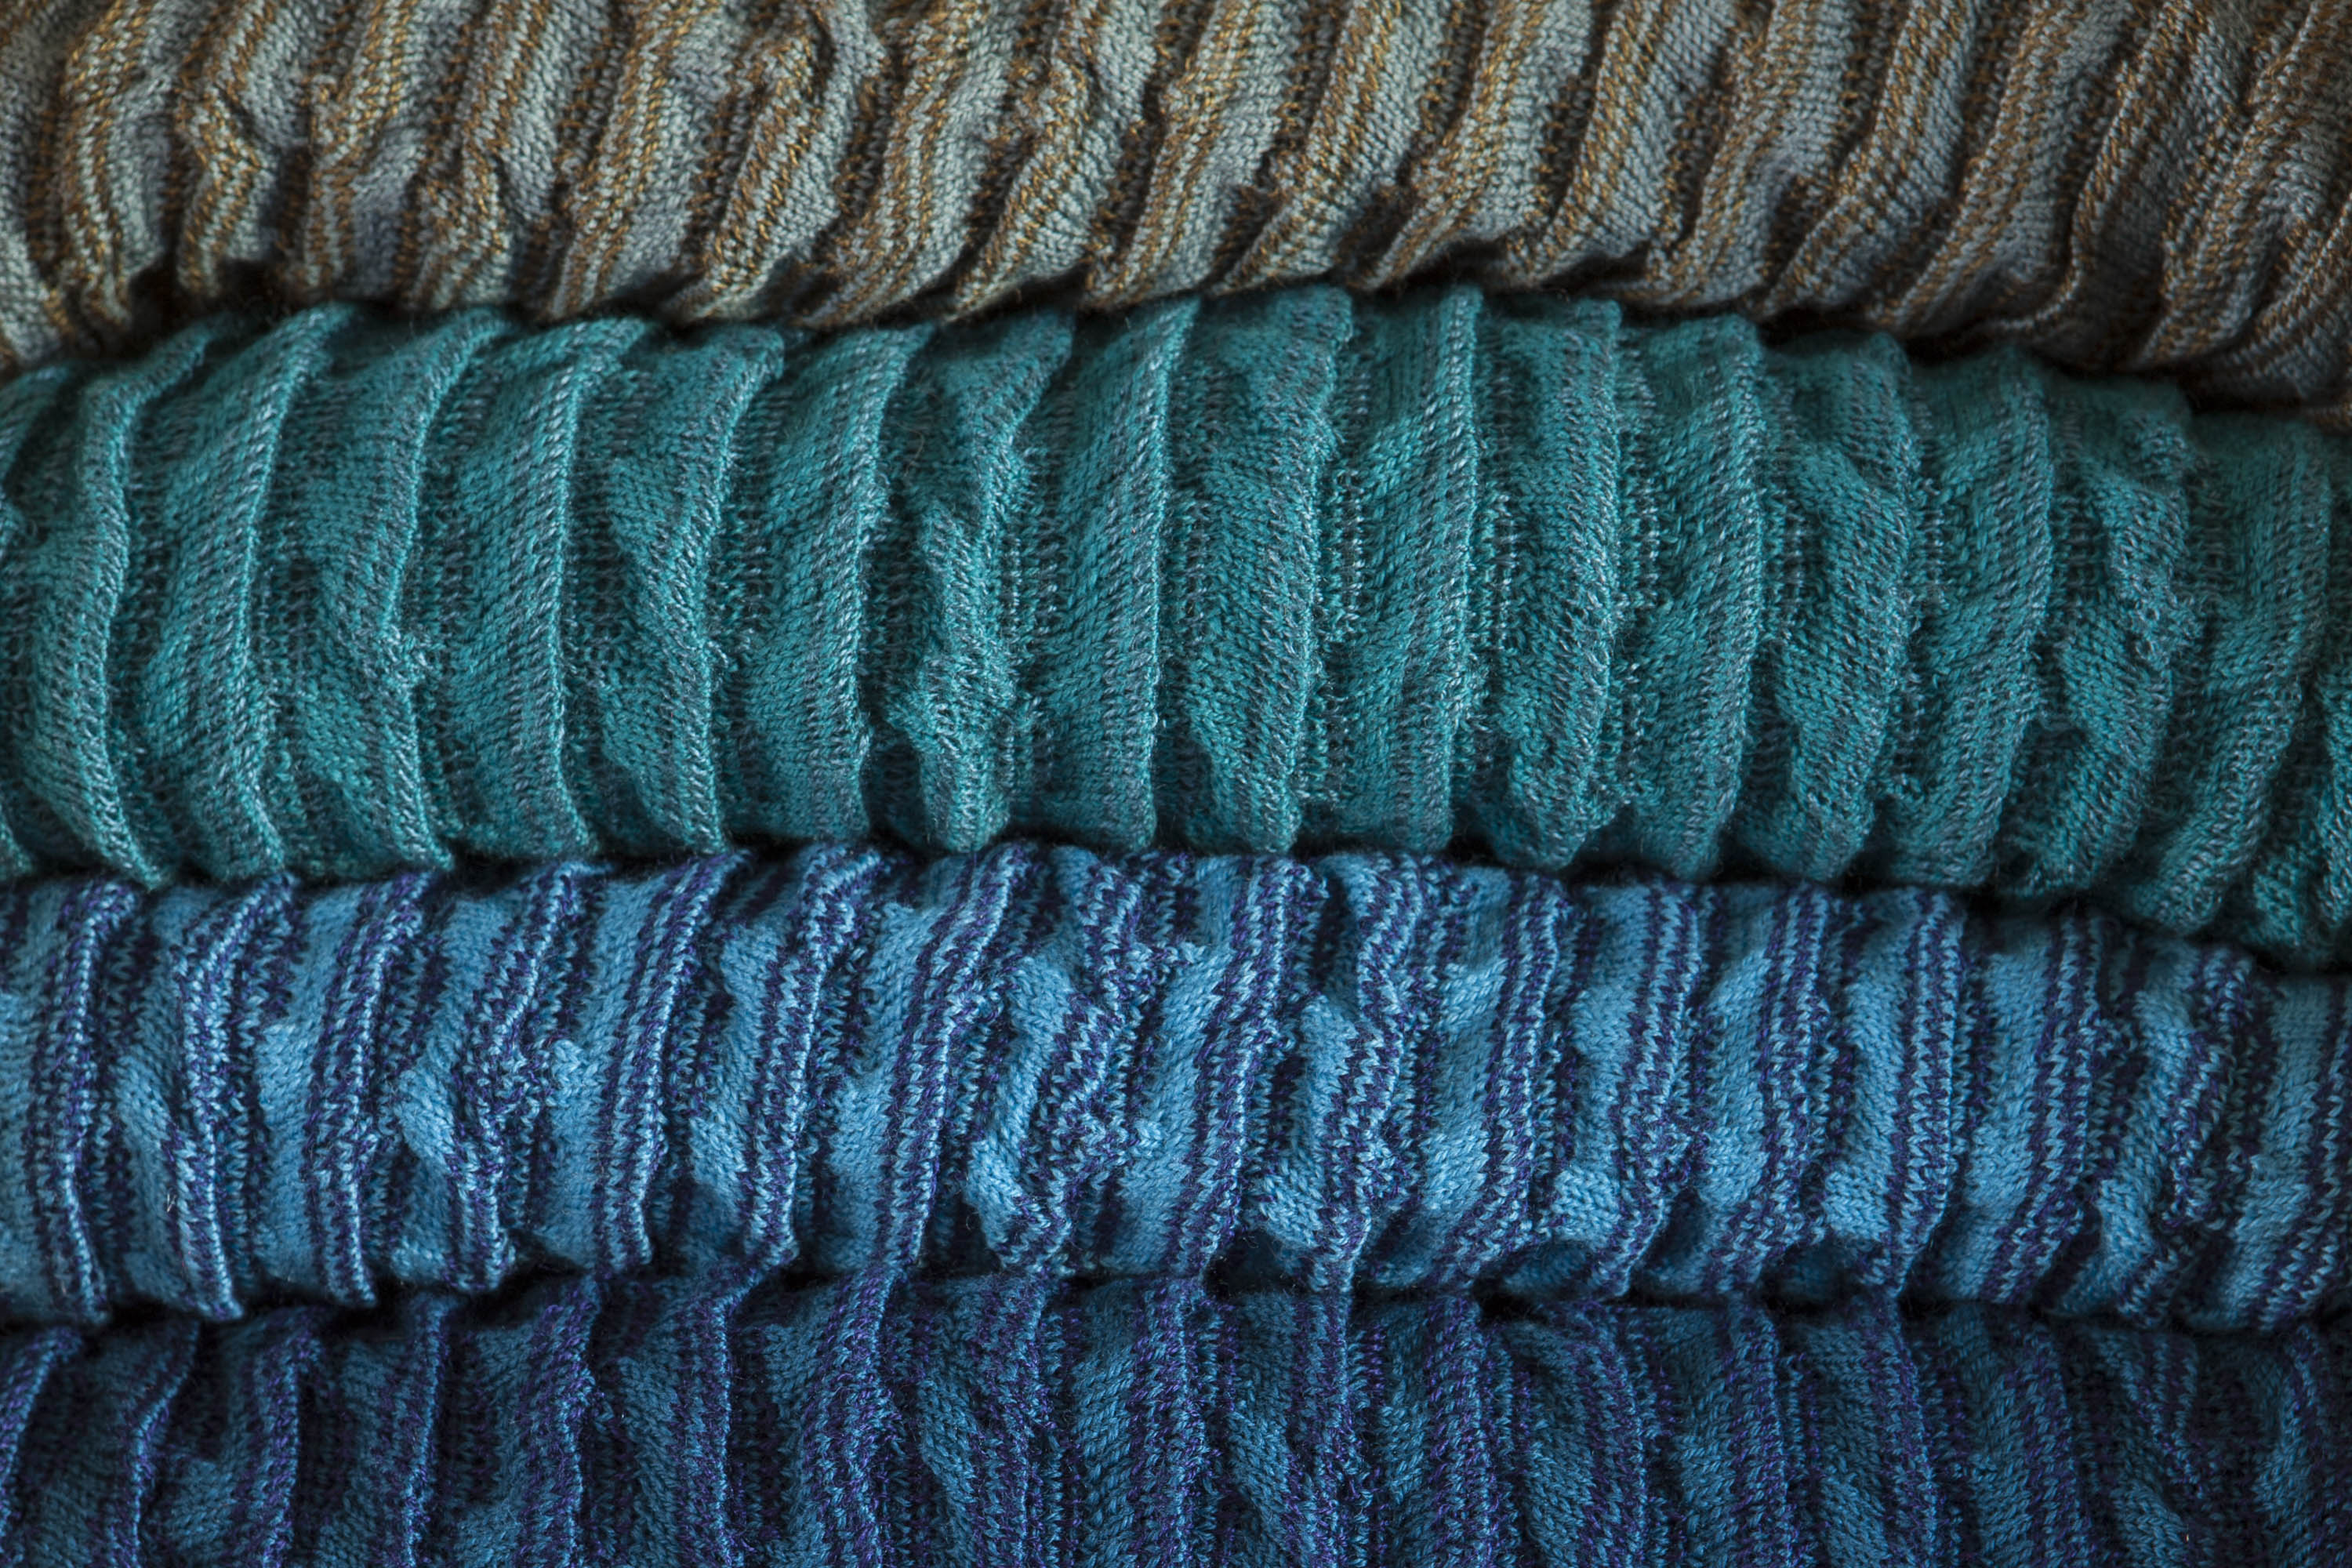 A close up of stacked Rigg Vaarie jackets - ridged knitwear in blues. At the Nielanell studio, Hoswick, Shetland